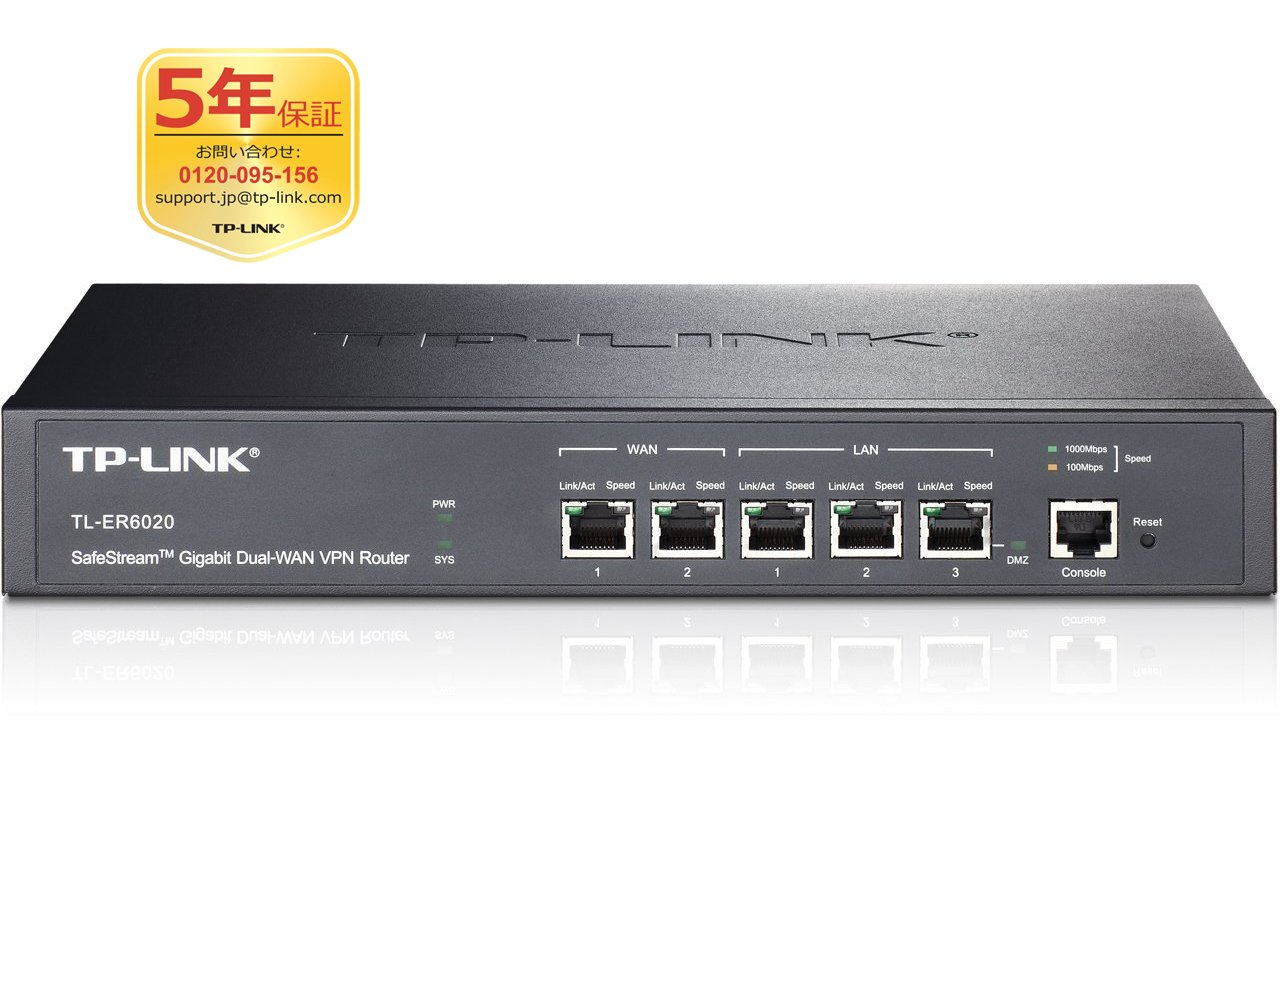 TP-Link TL-ER6020 v1 Router Windows 8 Driver Download